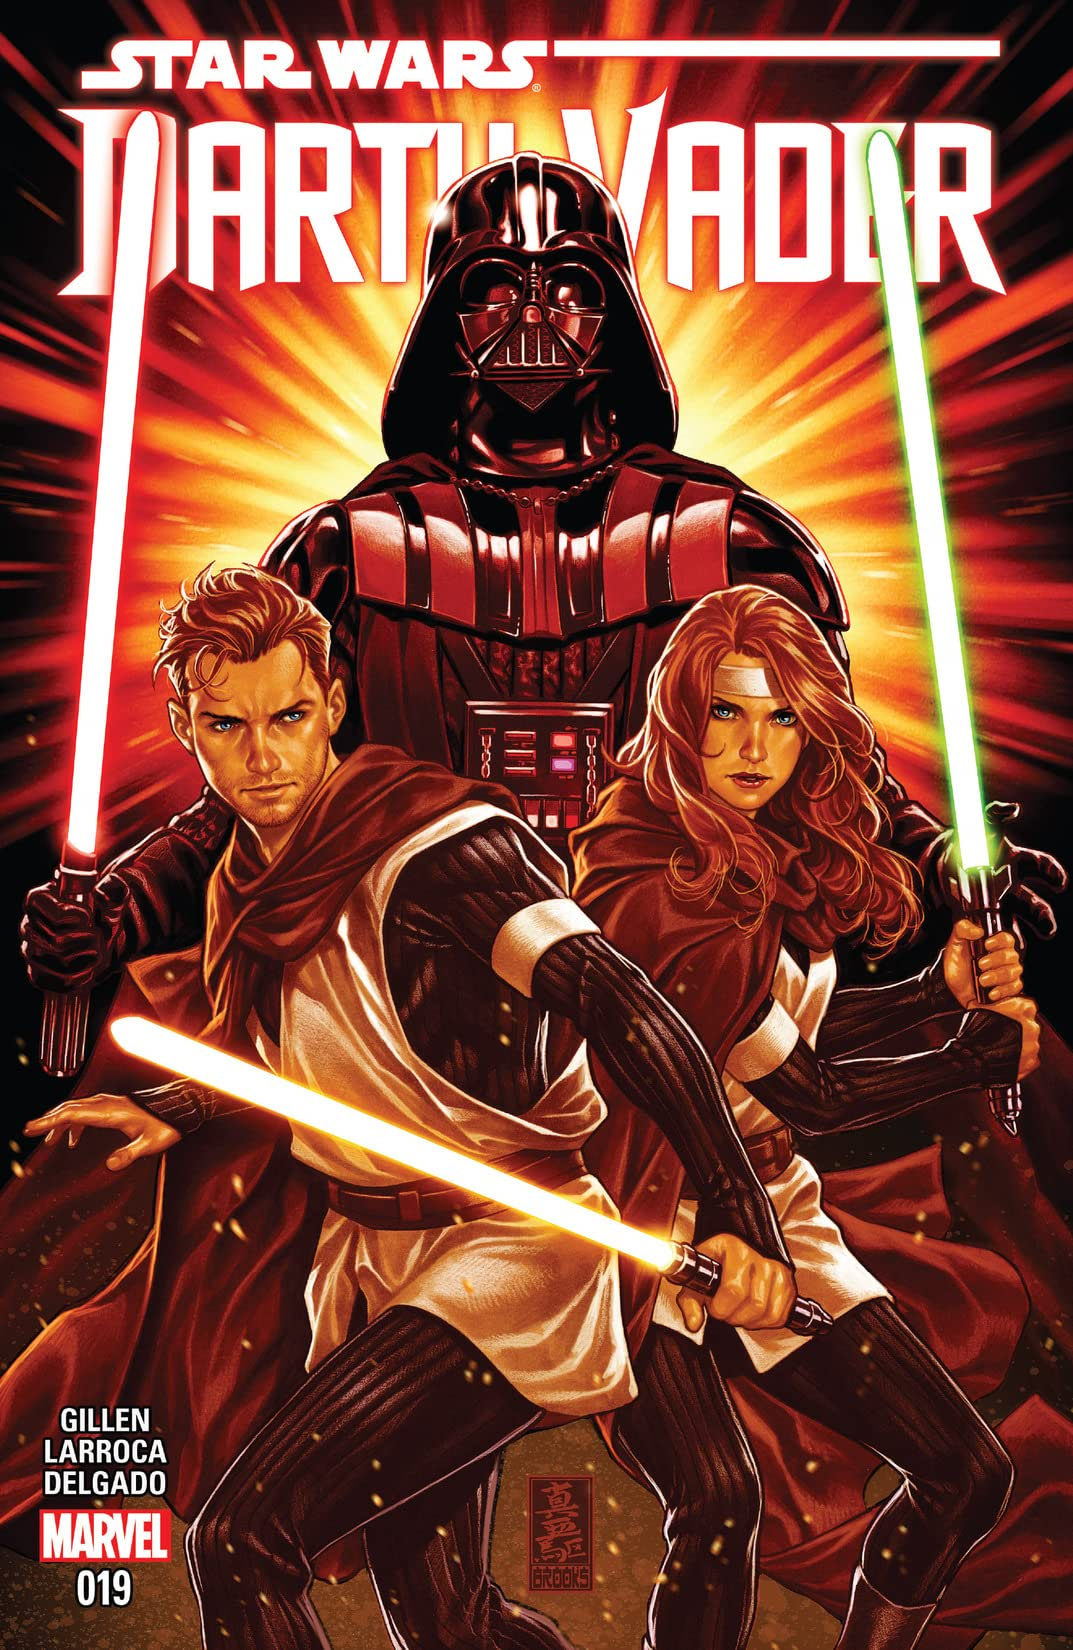 Darth Vader 2015 2016 19 Comics By Comixology